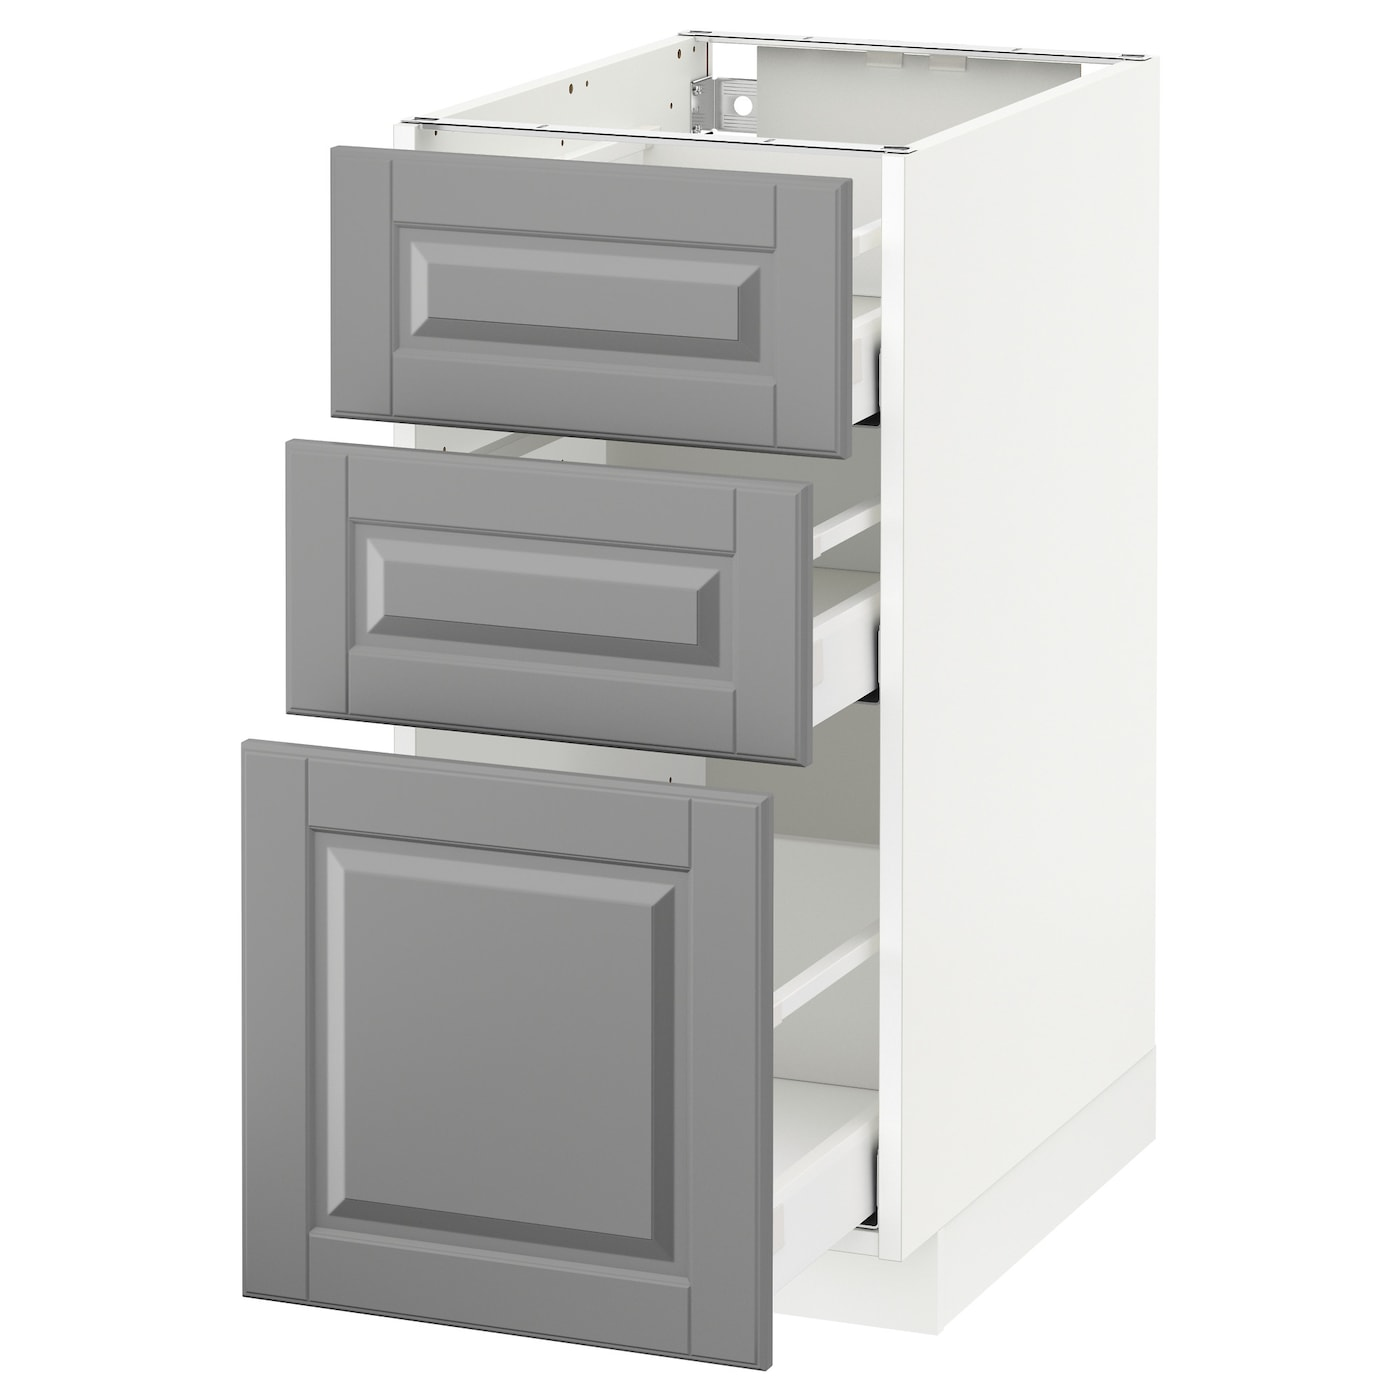 Metod Maximera Base Cabinet With 3 Drawers White Bodbyn Grey 40x60 Cm Ikea